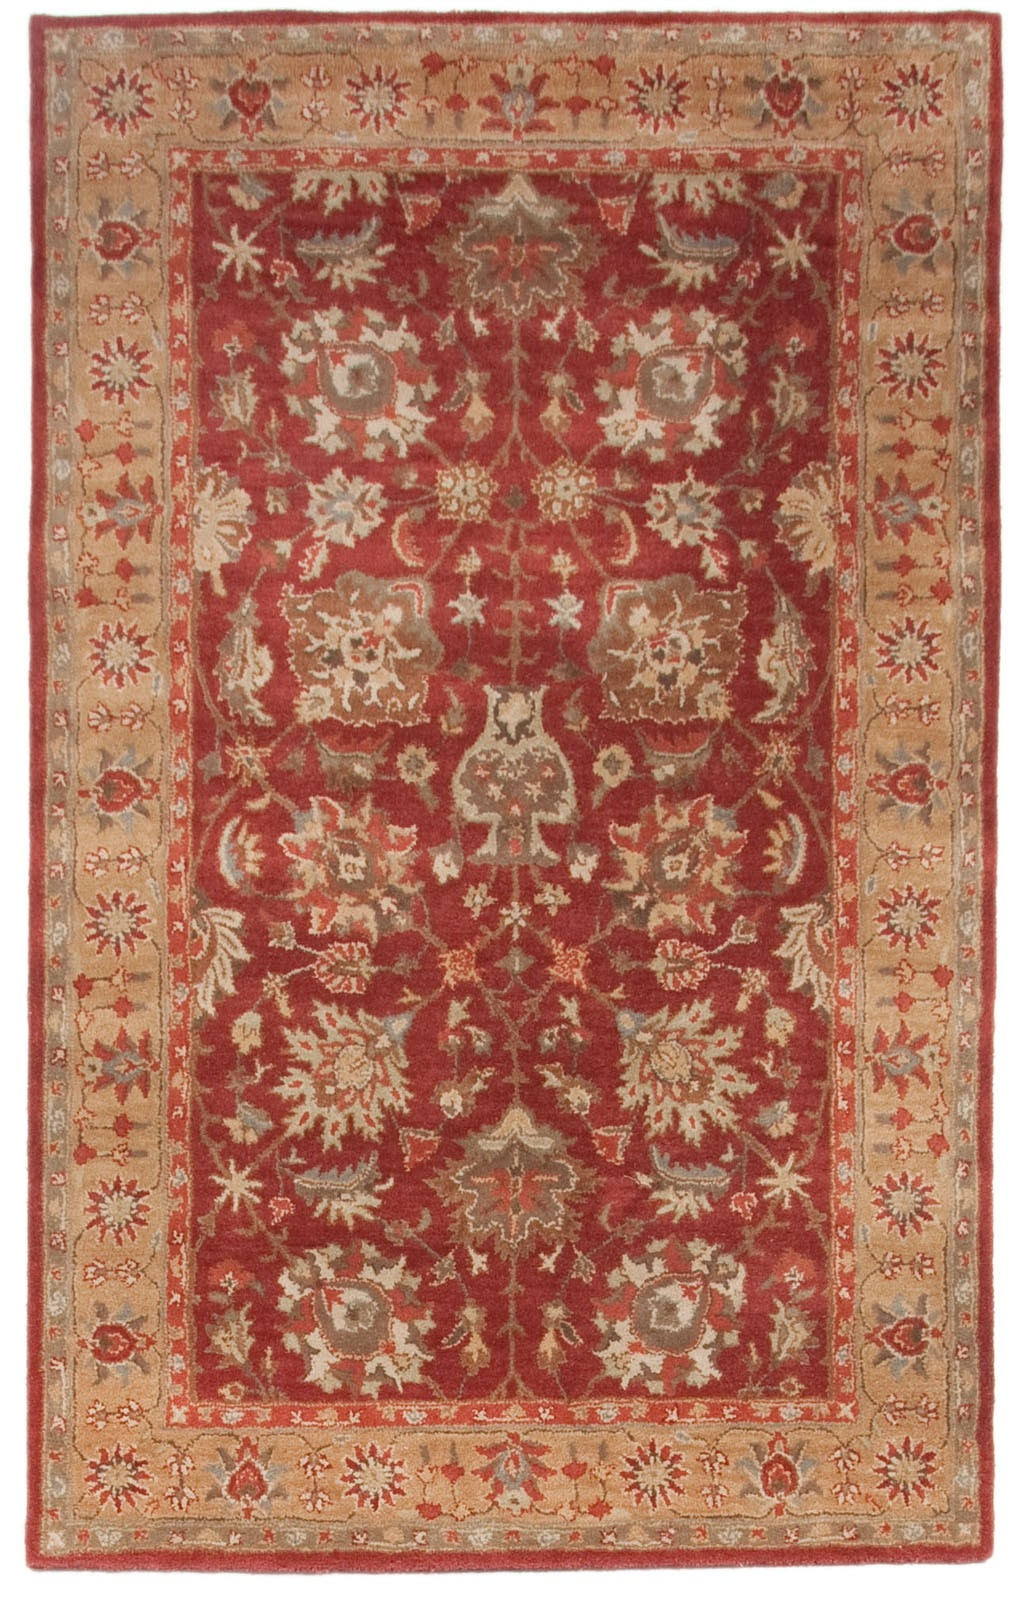 Beautiful Royal Hand Tufted Wool Area Rug 5×8 Red Beige Blue Yellow Within 5×8 Wool Area Rugs (#1 of 15)